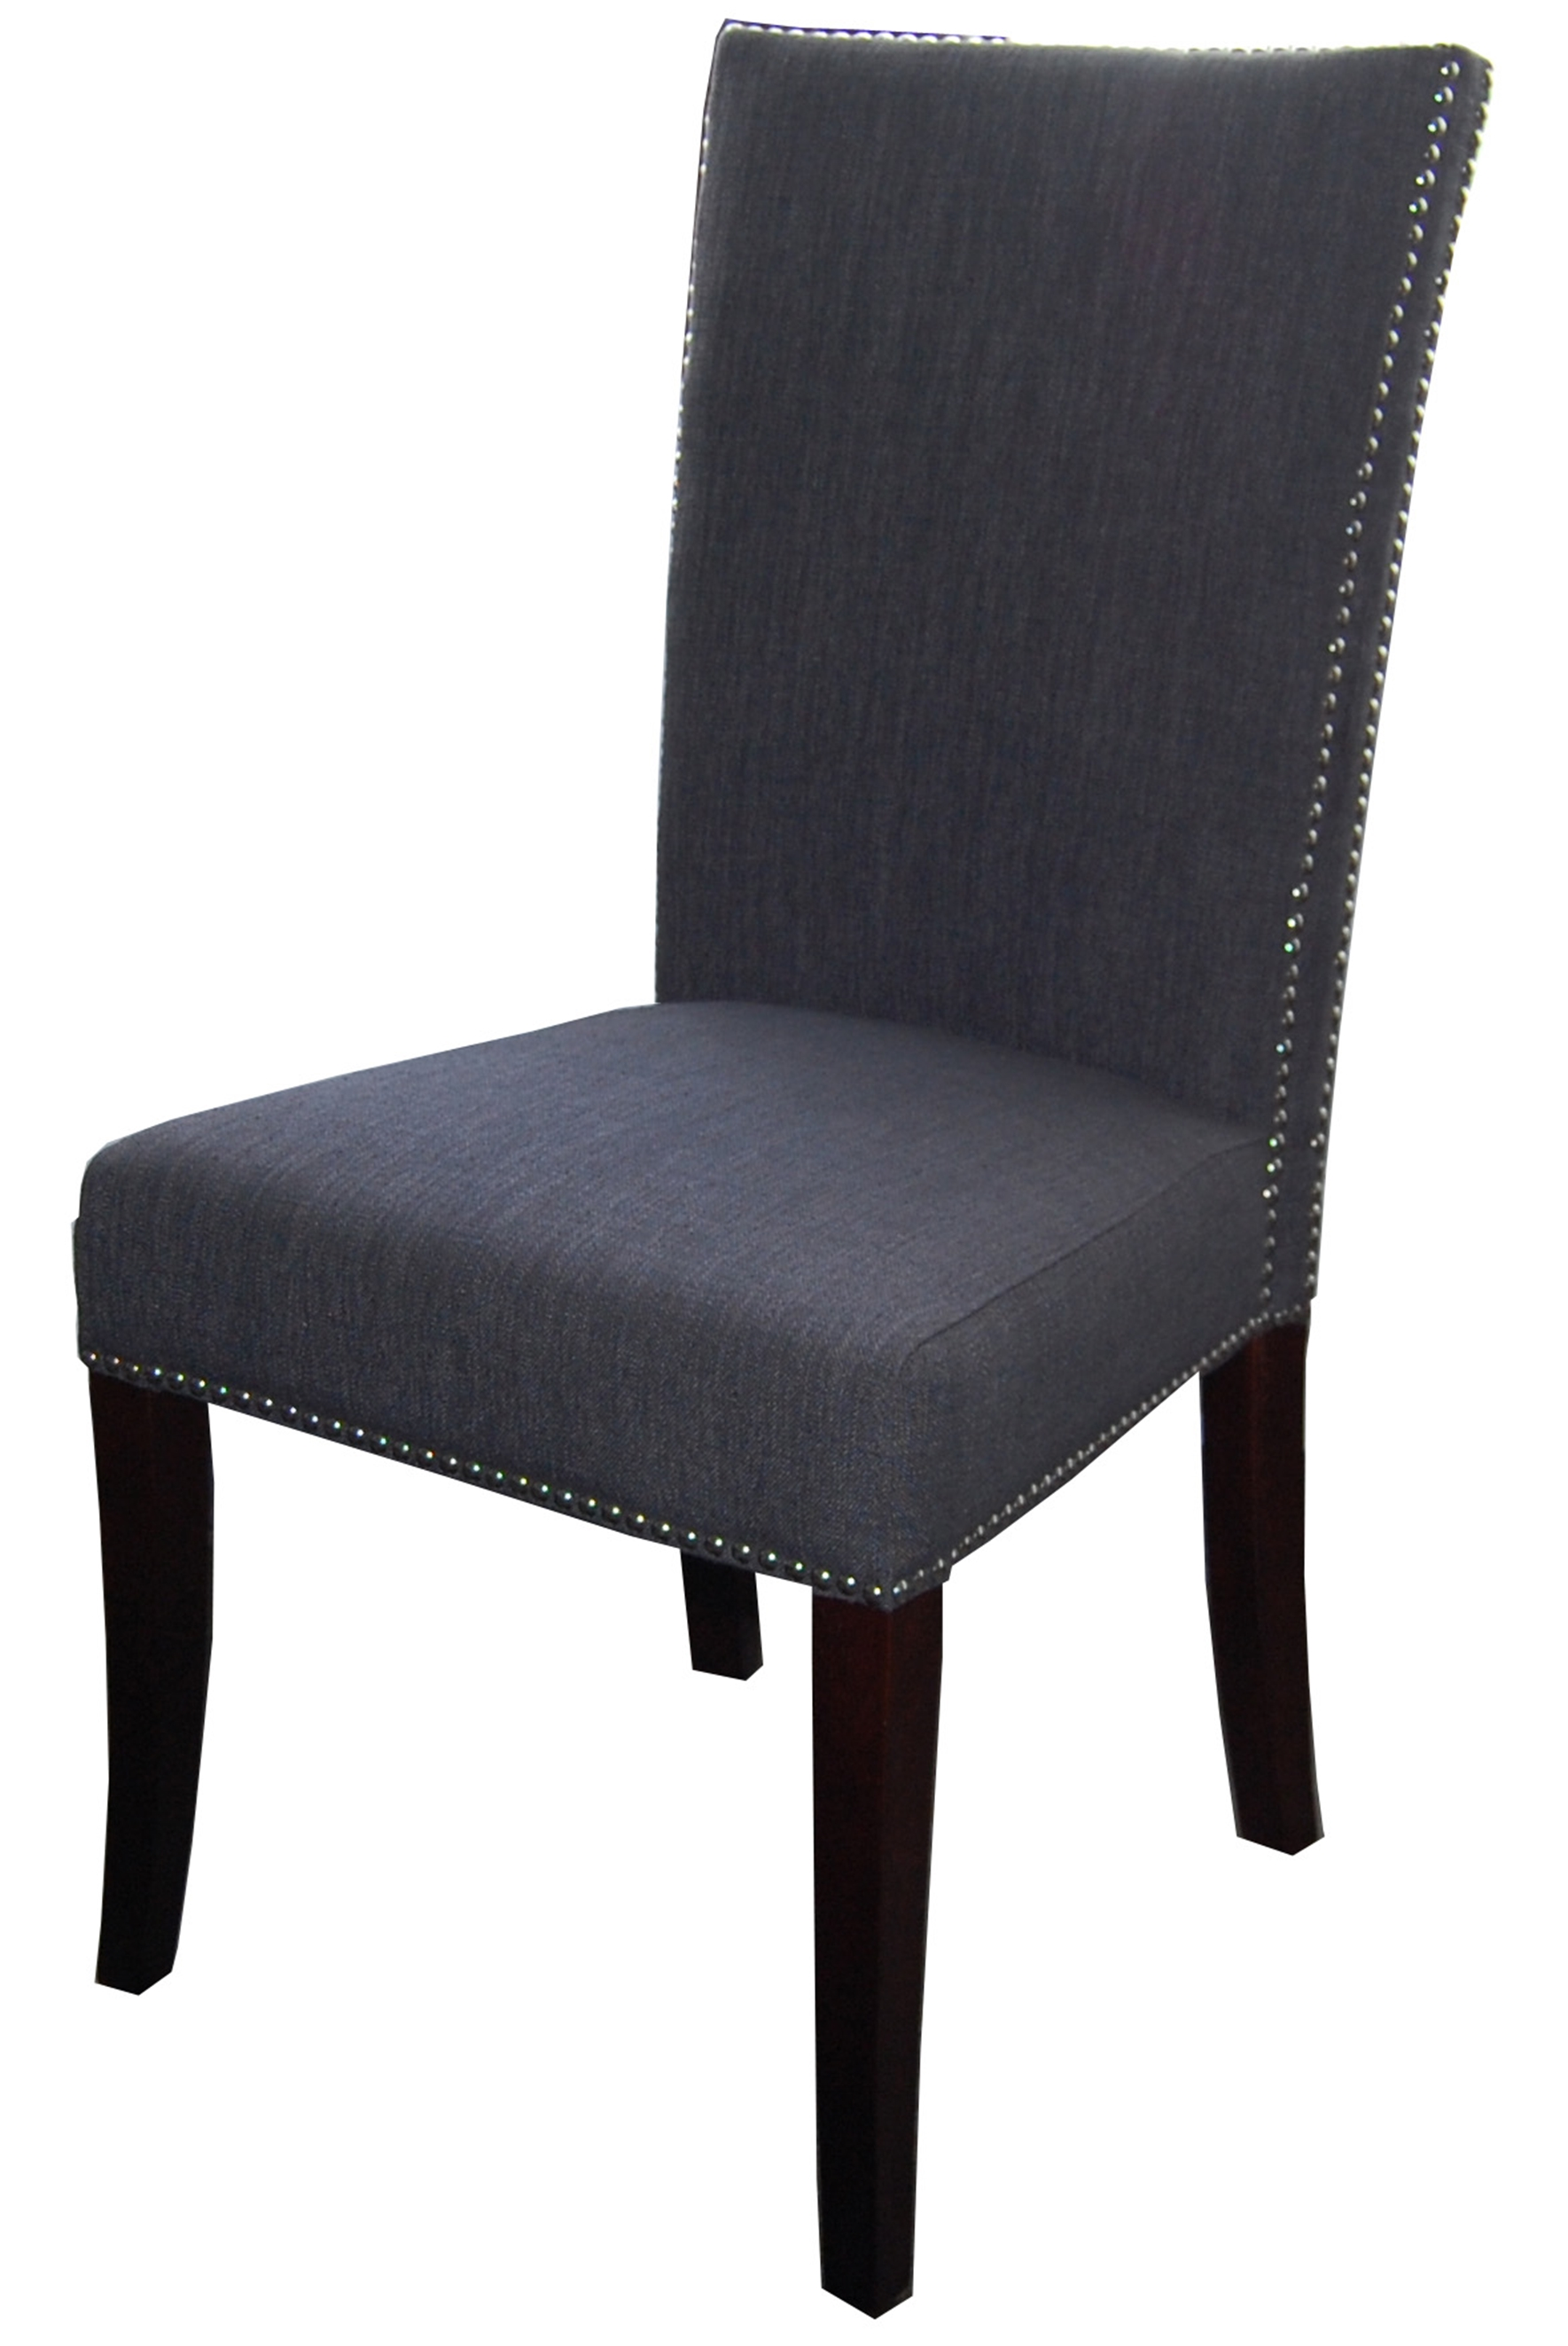 Rv 3005 High Fabric Fabric Dining Chair